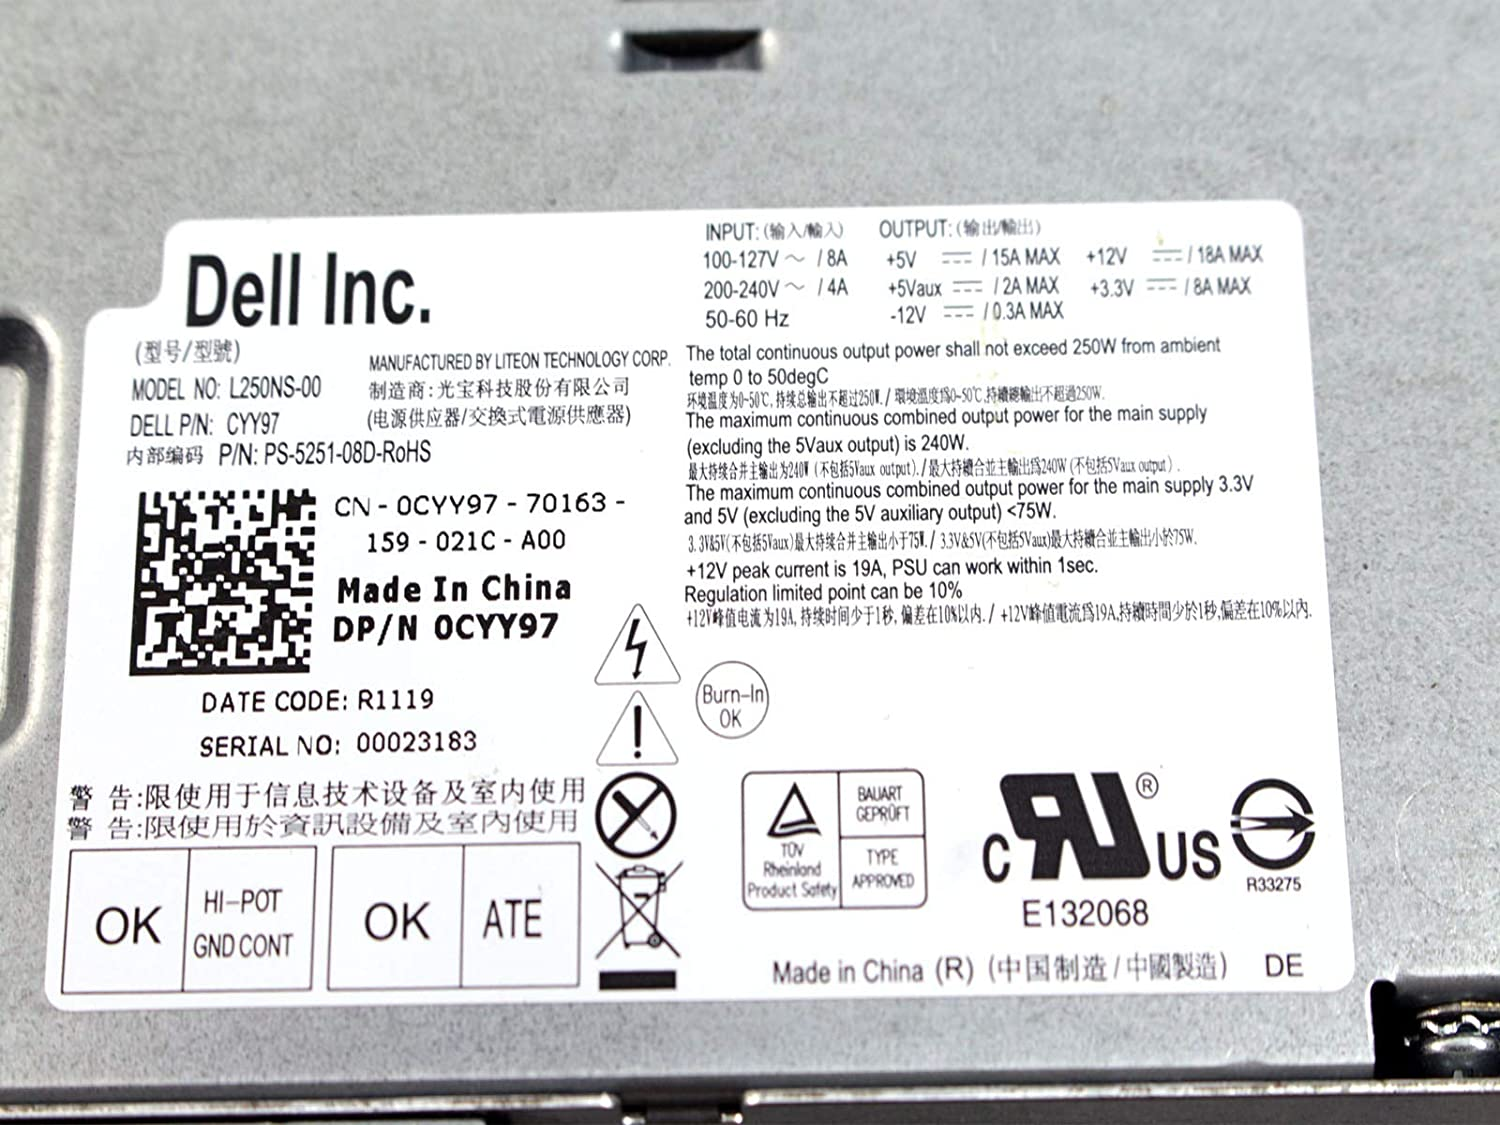 Amazon.com: Genuine Dell 250W Watt CYY97 7GC81 L250NS-00 Power Supply Unit PSU For Inspiron 530s 620s Vostro 200s 220s, Optiplex 390, 790, 990 Desktop DT ...